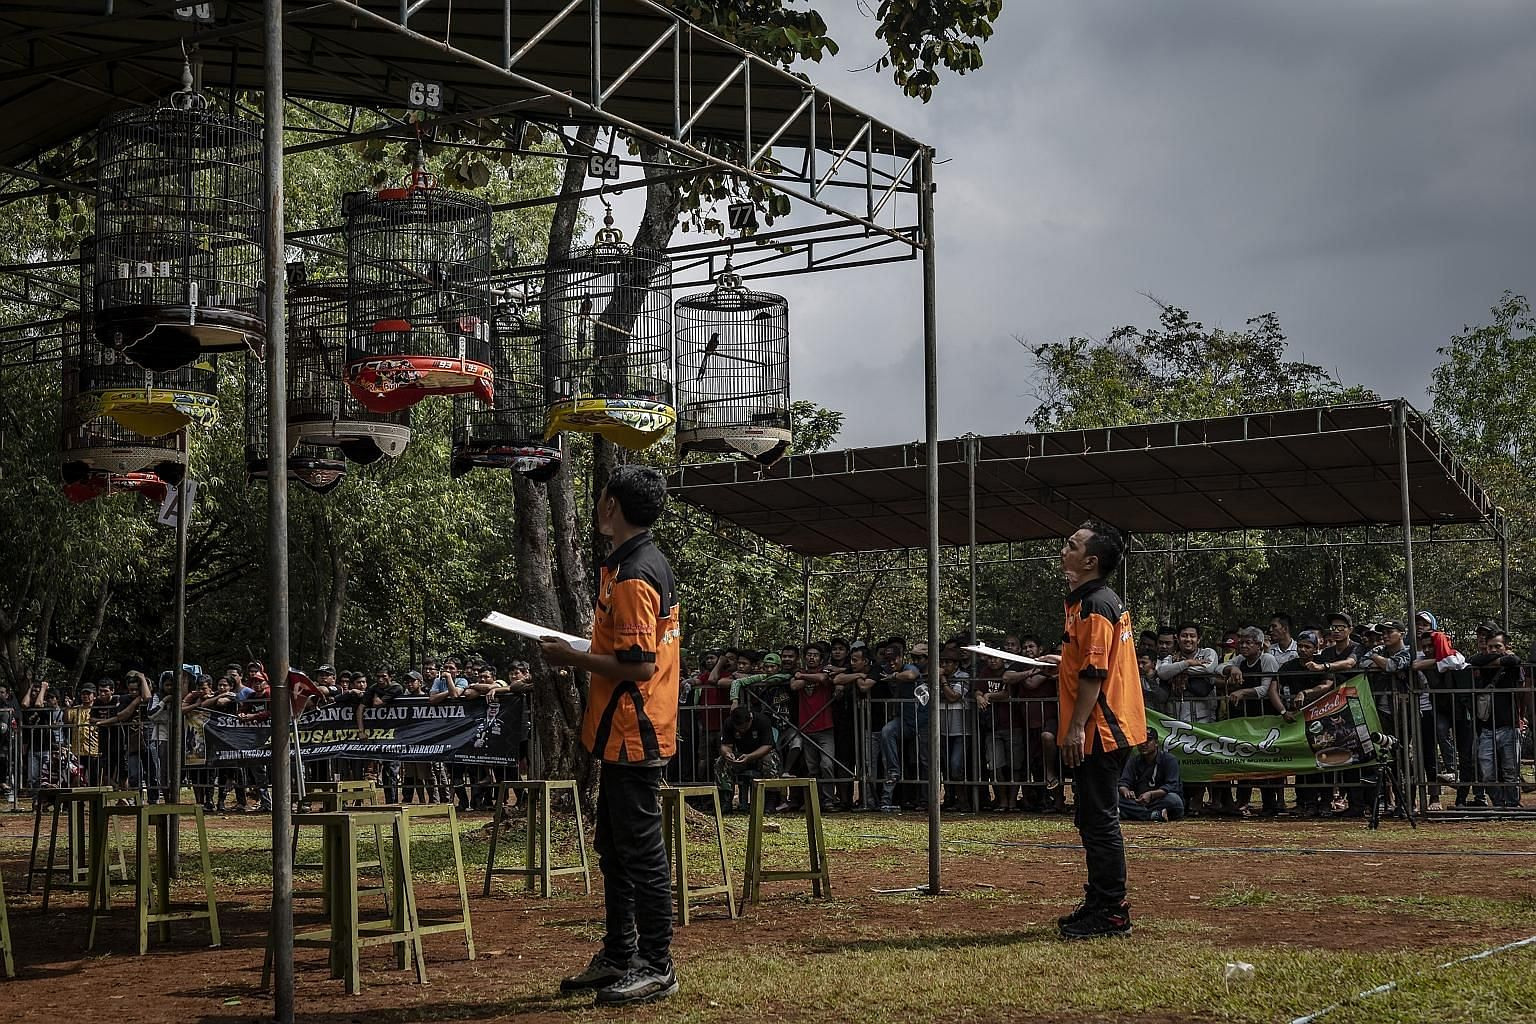 Judges listening to birds at the South Jakarta Police Chief's Cup, a bird-singing competition that was held in Jakarta, Indonesia on Jan 26. Wild songbirds are being entered into high-stakes singing competitions across Indonesia and conservationists